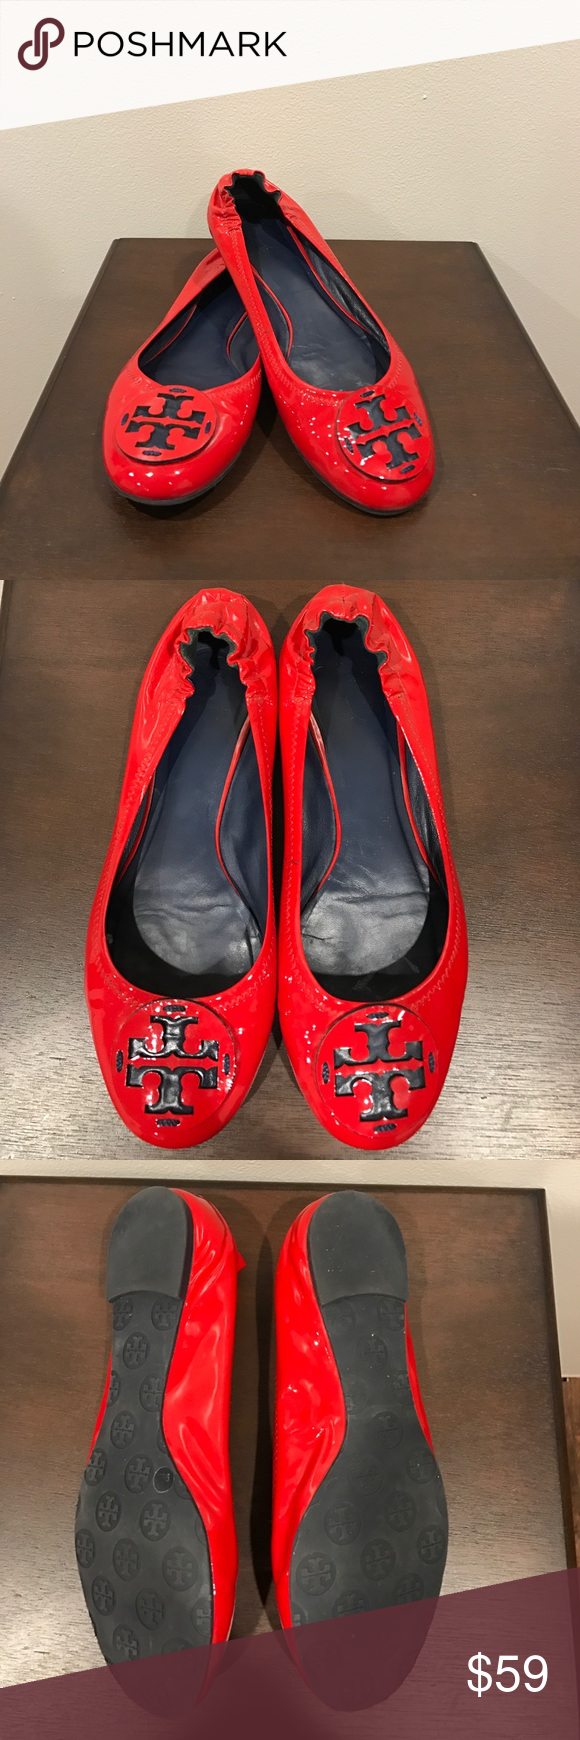 Red Patent Leather Tory Burch Flats Size 9.5 Beautiful EUC Tory Burch Flats!! These shoes are in great condition. The inside does show some sings of wear but the outsides are great. There is only the scuff on one shoe as shown in the last picture.? If you have any questions please ask. I welcome offers 💕 Tory Burch Shoes Flats & Loafers